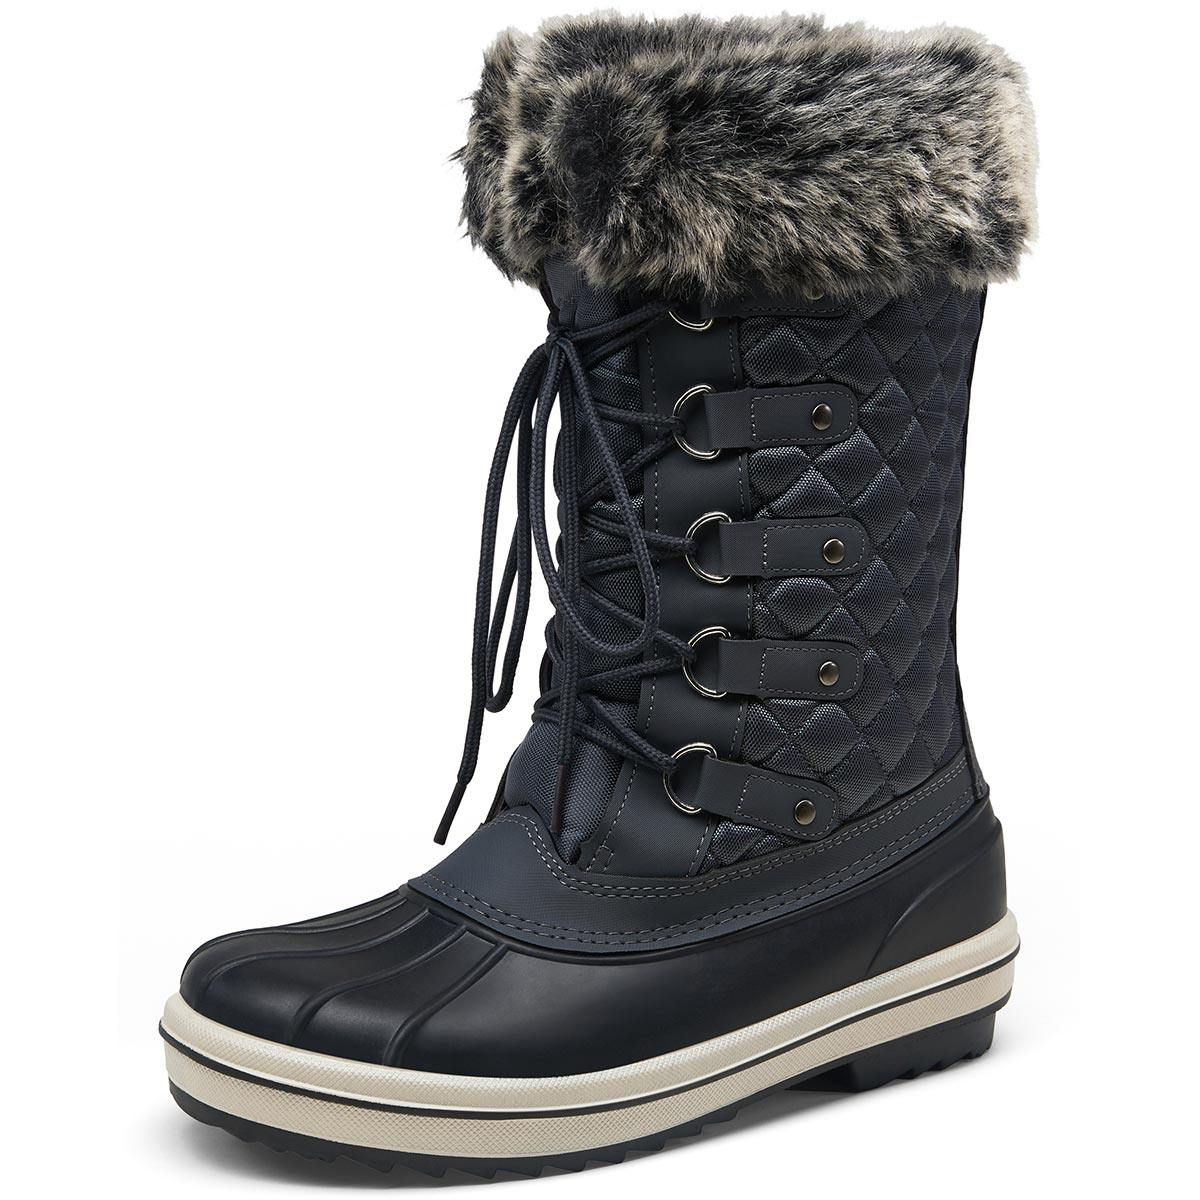 Women's Snow Boots Waterproof Fur Shoes | Vepose - Top shoes club